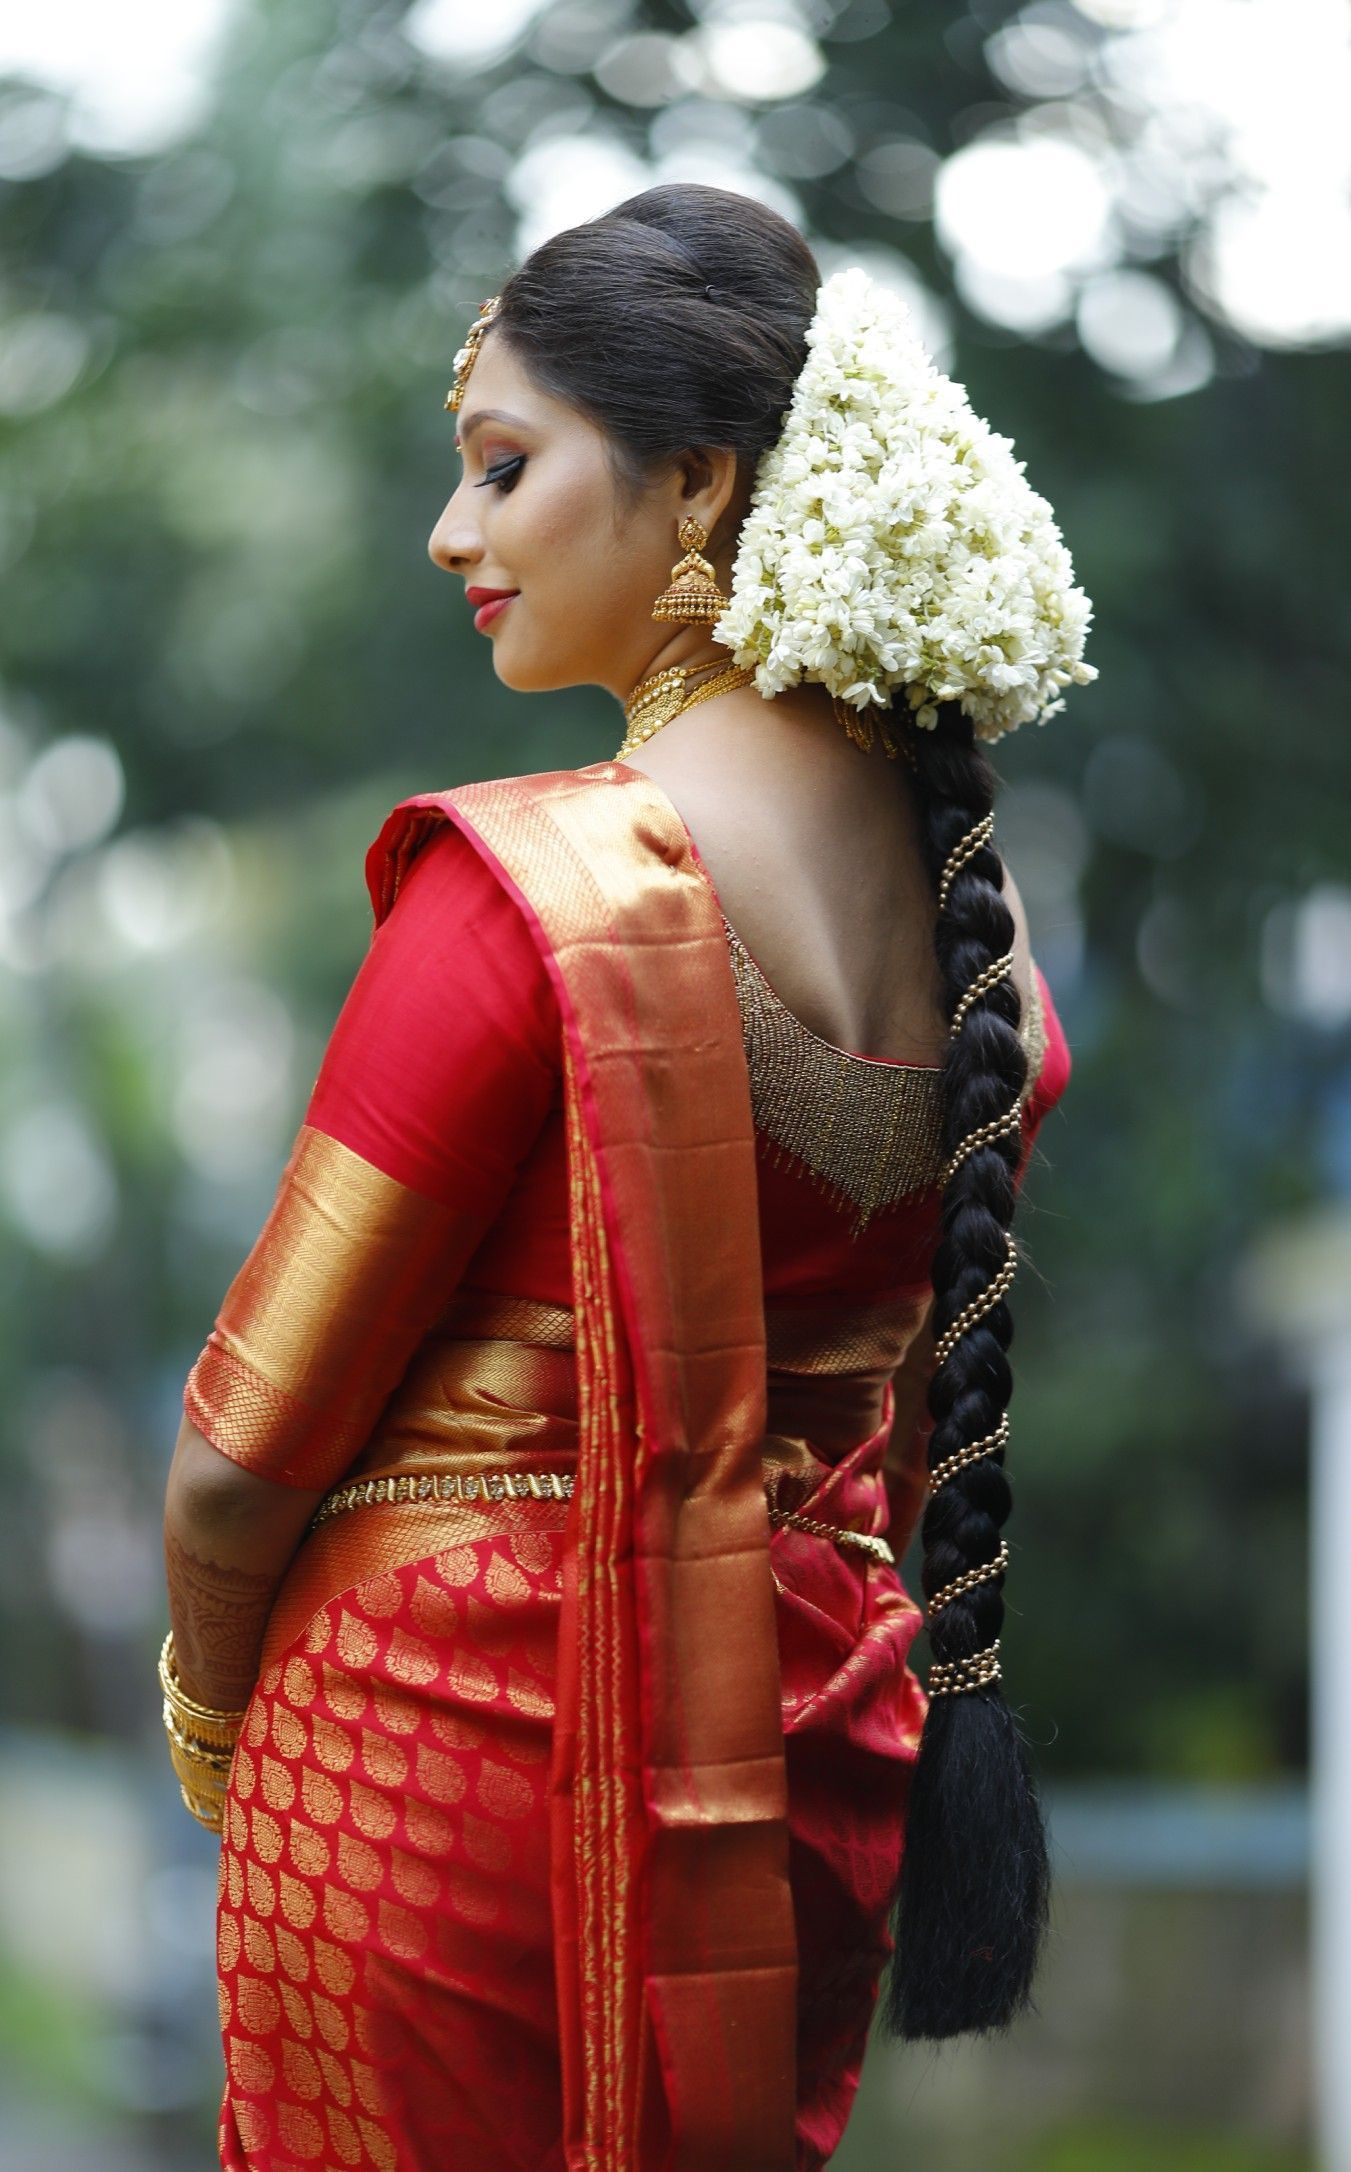 South Indian Bridal Hairstyle South Indian Bridal Hairstyle Bridalhairstyle Bridal In 2020 Hindu Bride Bridal Hairstyle Indian Wedding South Indian Bride Hairstyle